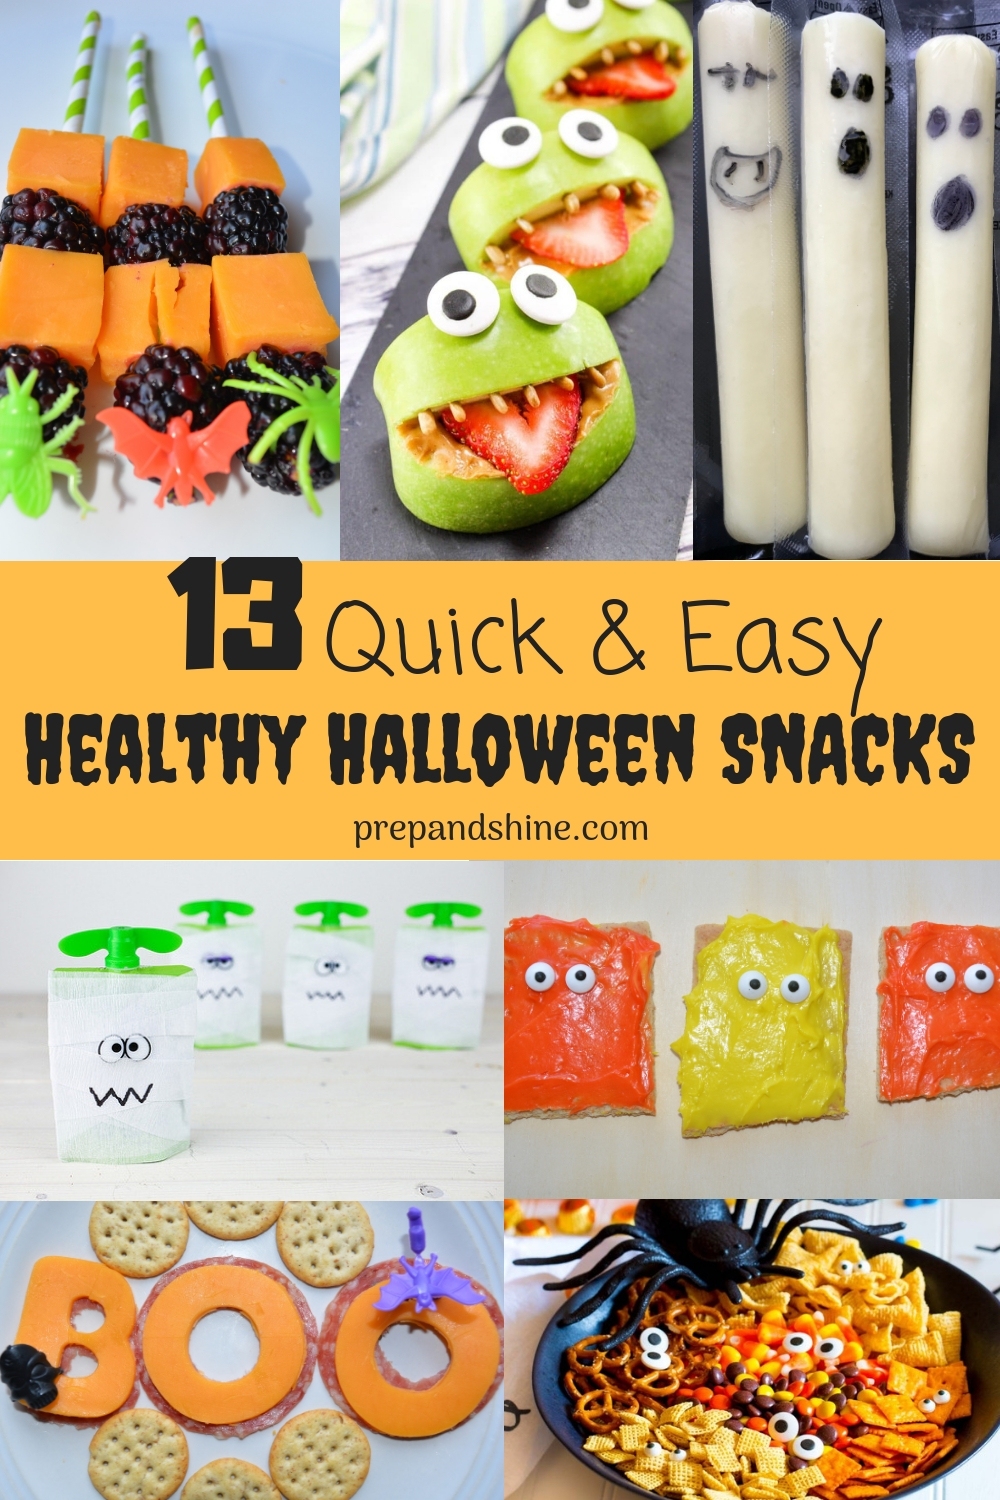 18 Quick and Easy Healthy Halloween Snack Ideas - Prep and Shine